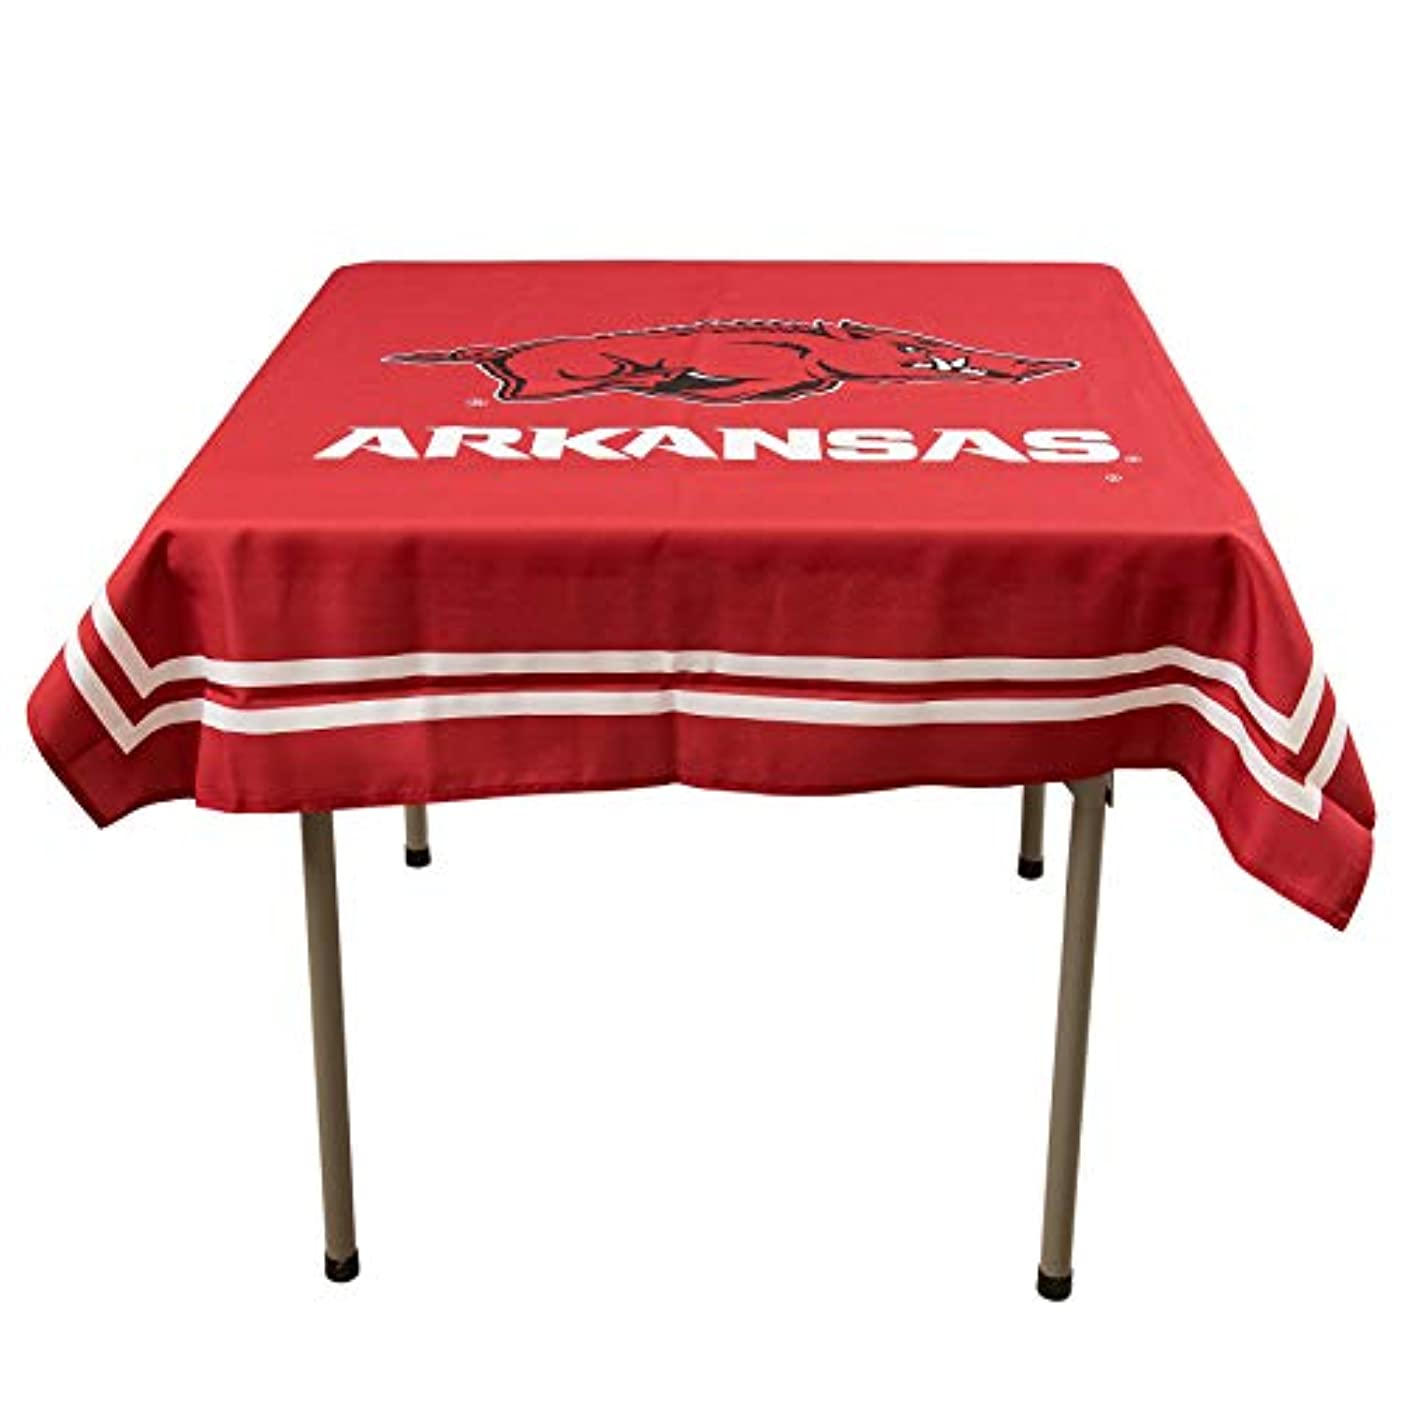 College Flags and Banners Co. Arkansas Razorbacks Logo Tablecloth or Table Overlay